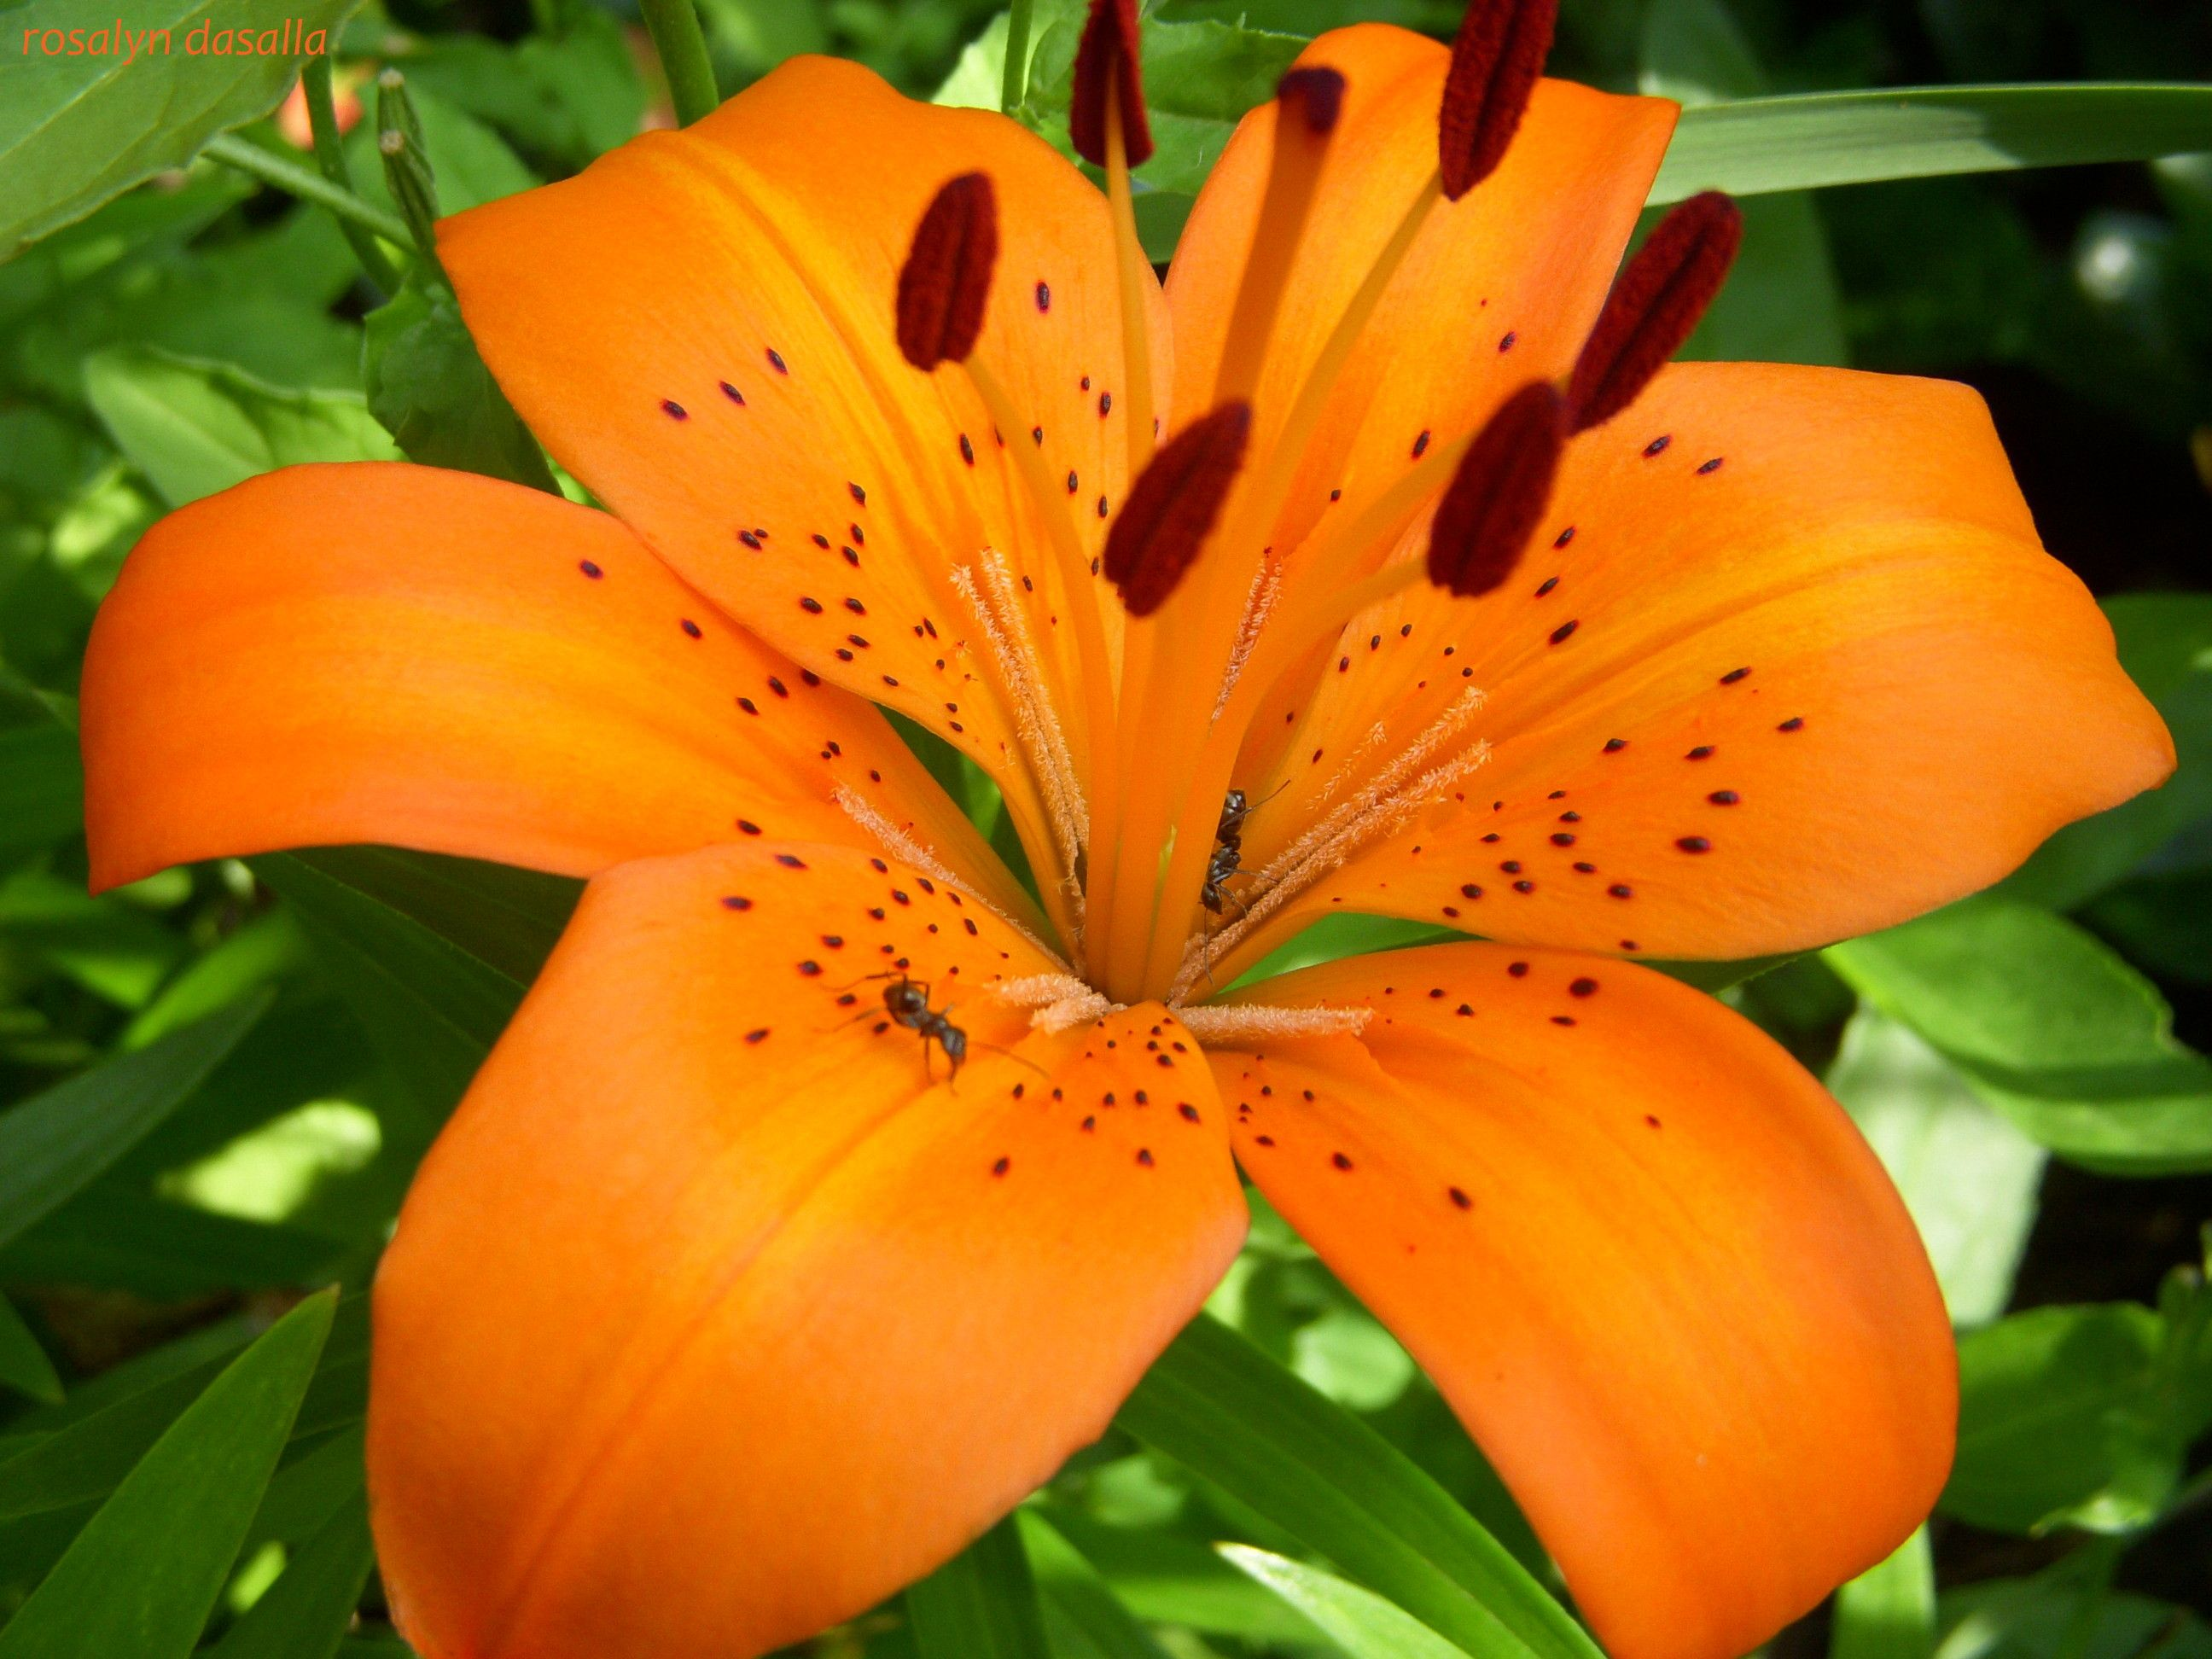 Tiger lily orange wallpaper things i like pinterest tigers tiger lily orange wallpaper izmirmasajfo Images